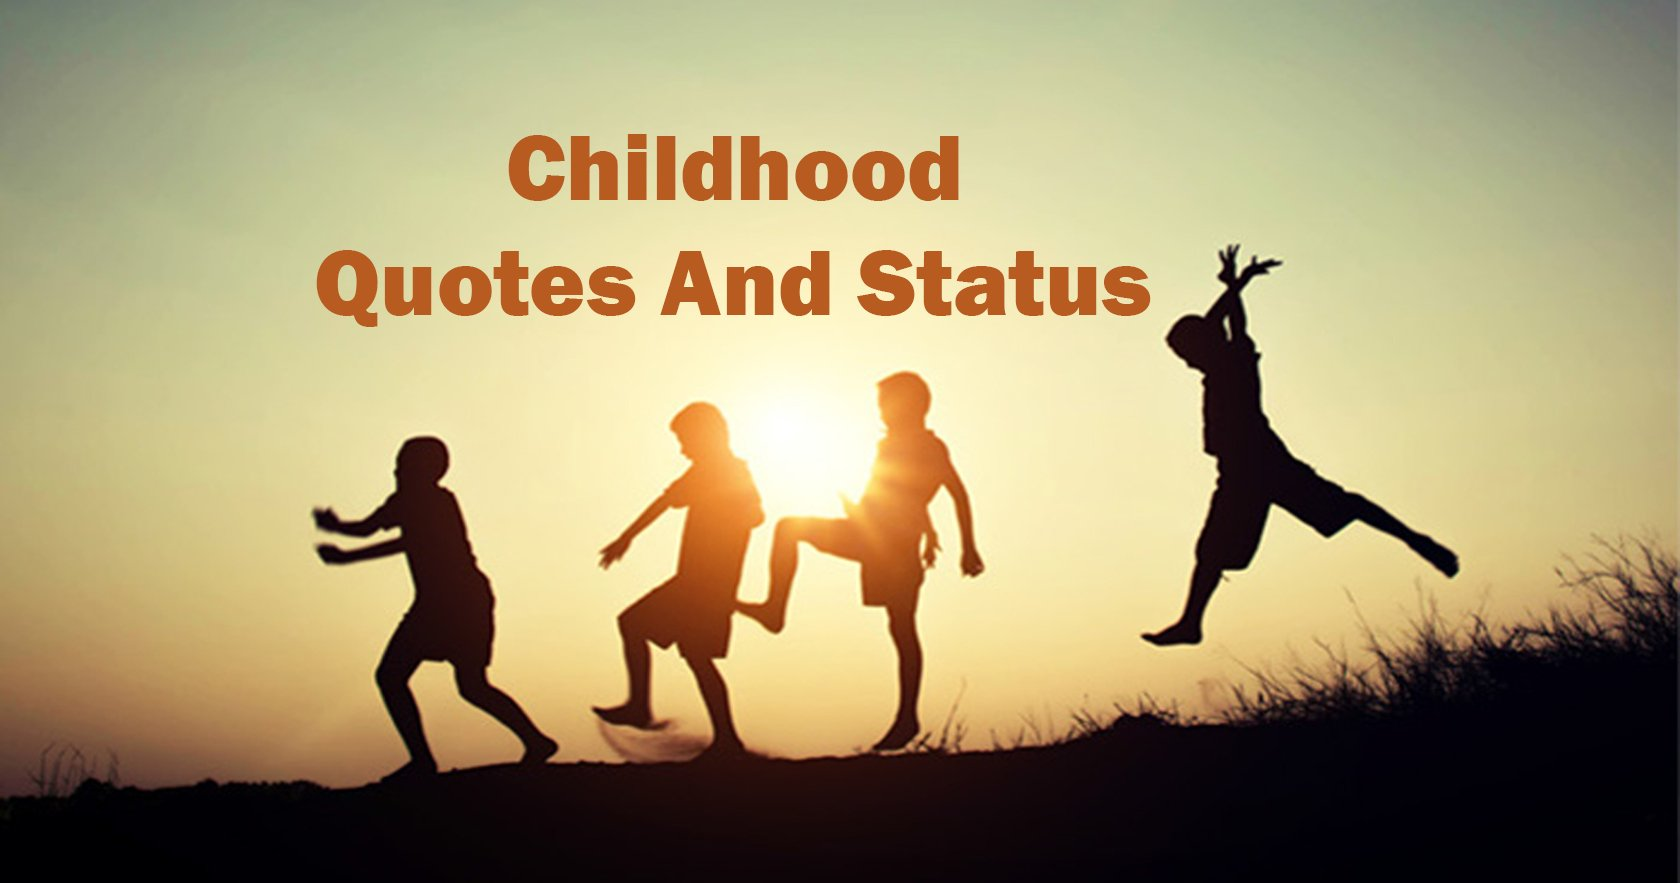 Beautiful Childhood Images